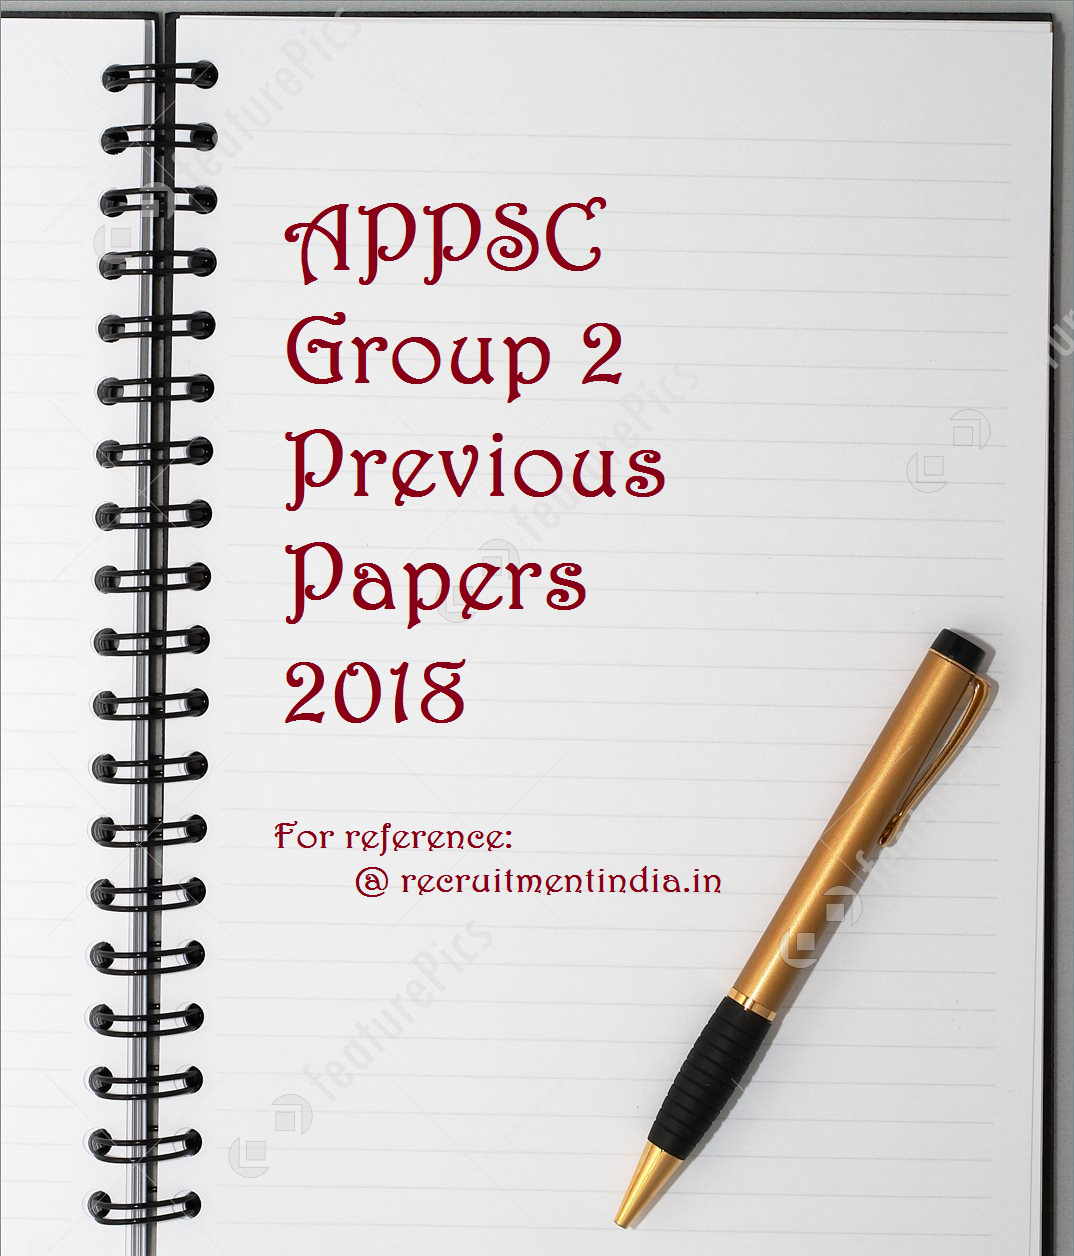 appsc group 2 previous papers in telugu free download